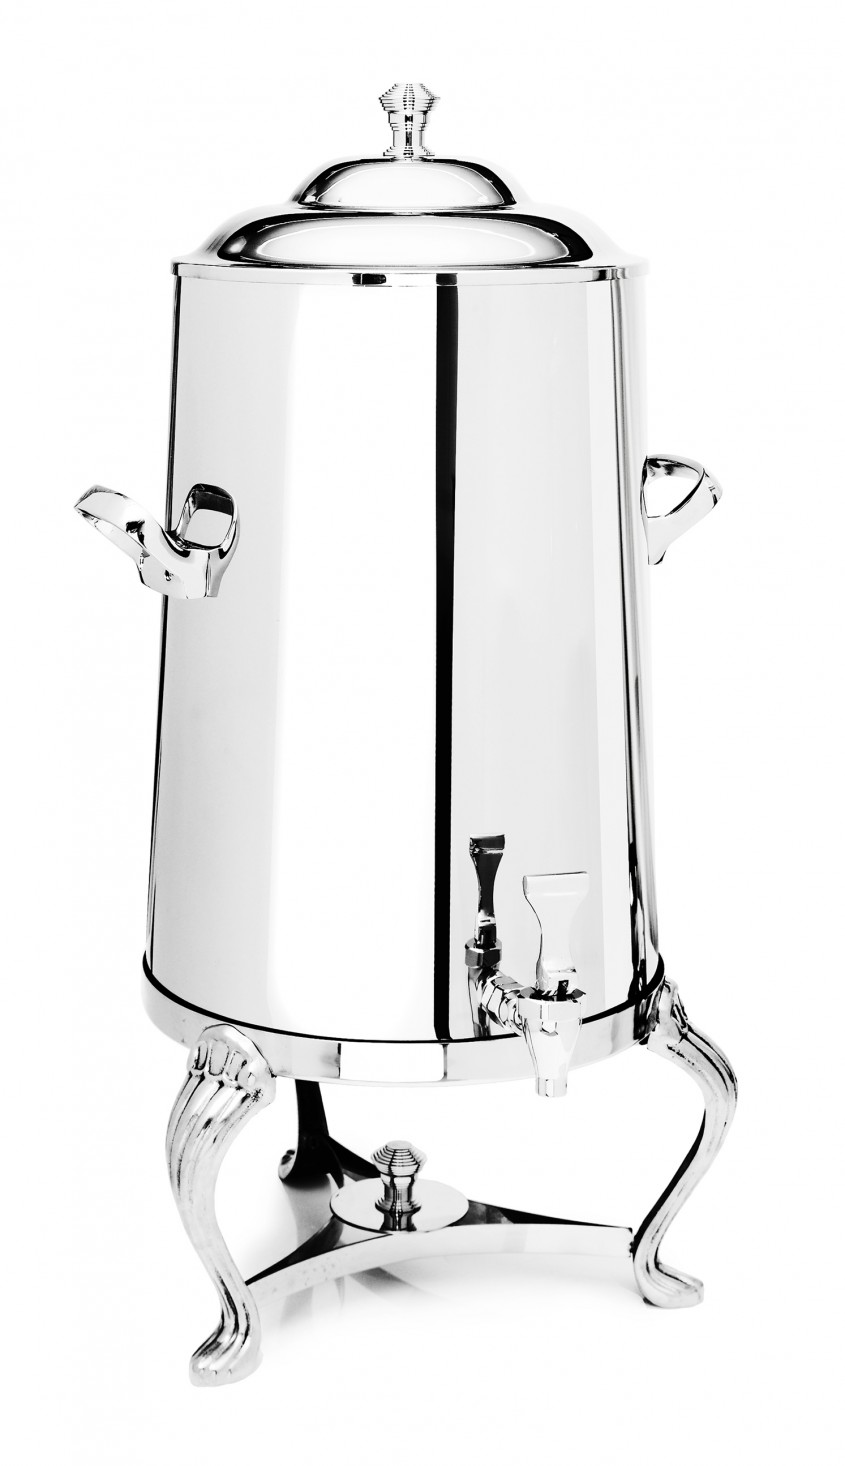 Interesting Coffee Urn For Kitchen And Dining Room Ideas With Stainless Steel Coffee Urn